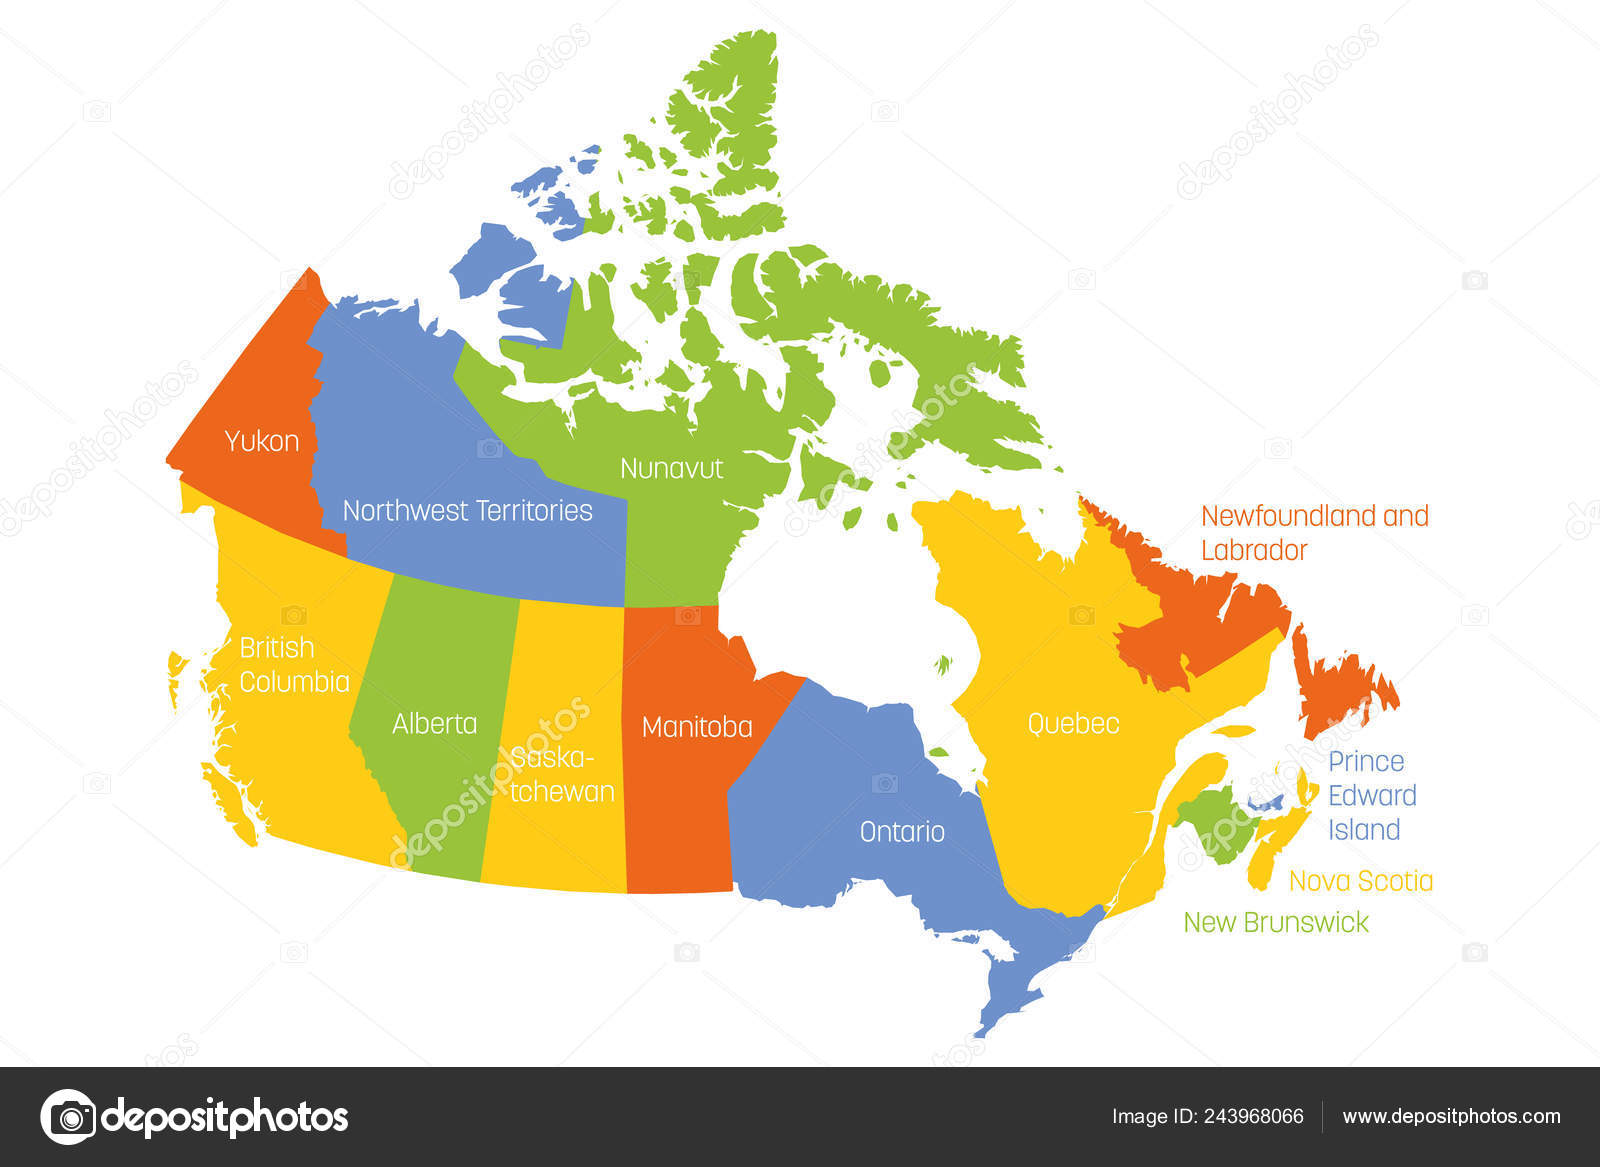 Map Of Canada With Labels Pictures : map of canada with labels | Map of Canada divided into